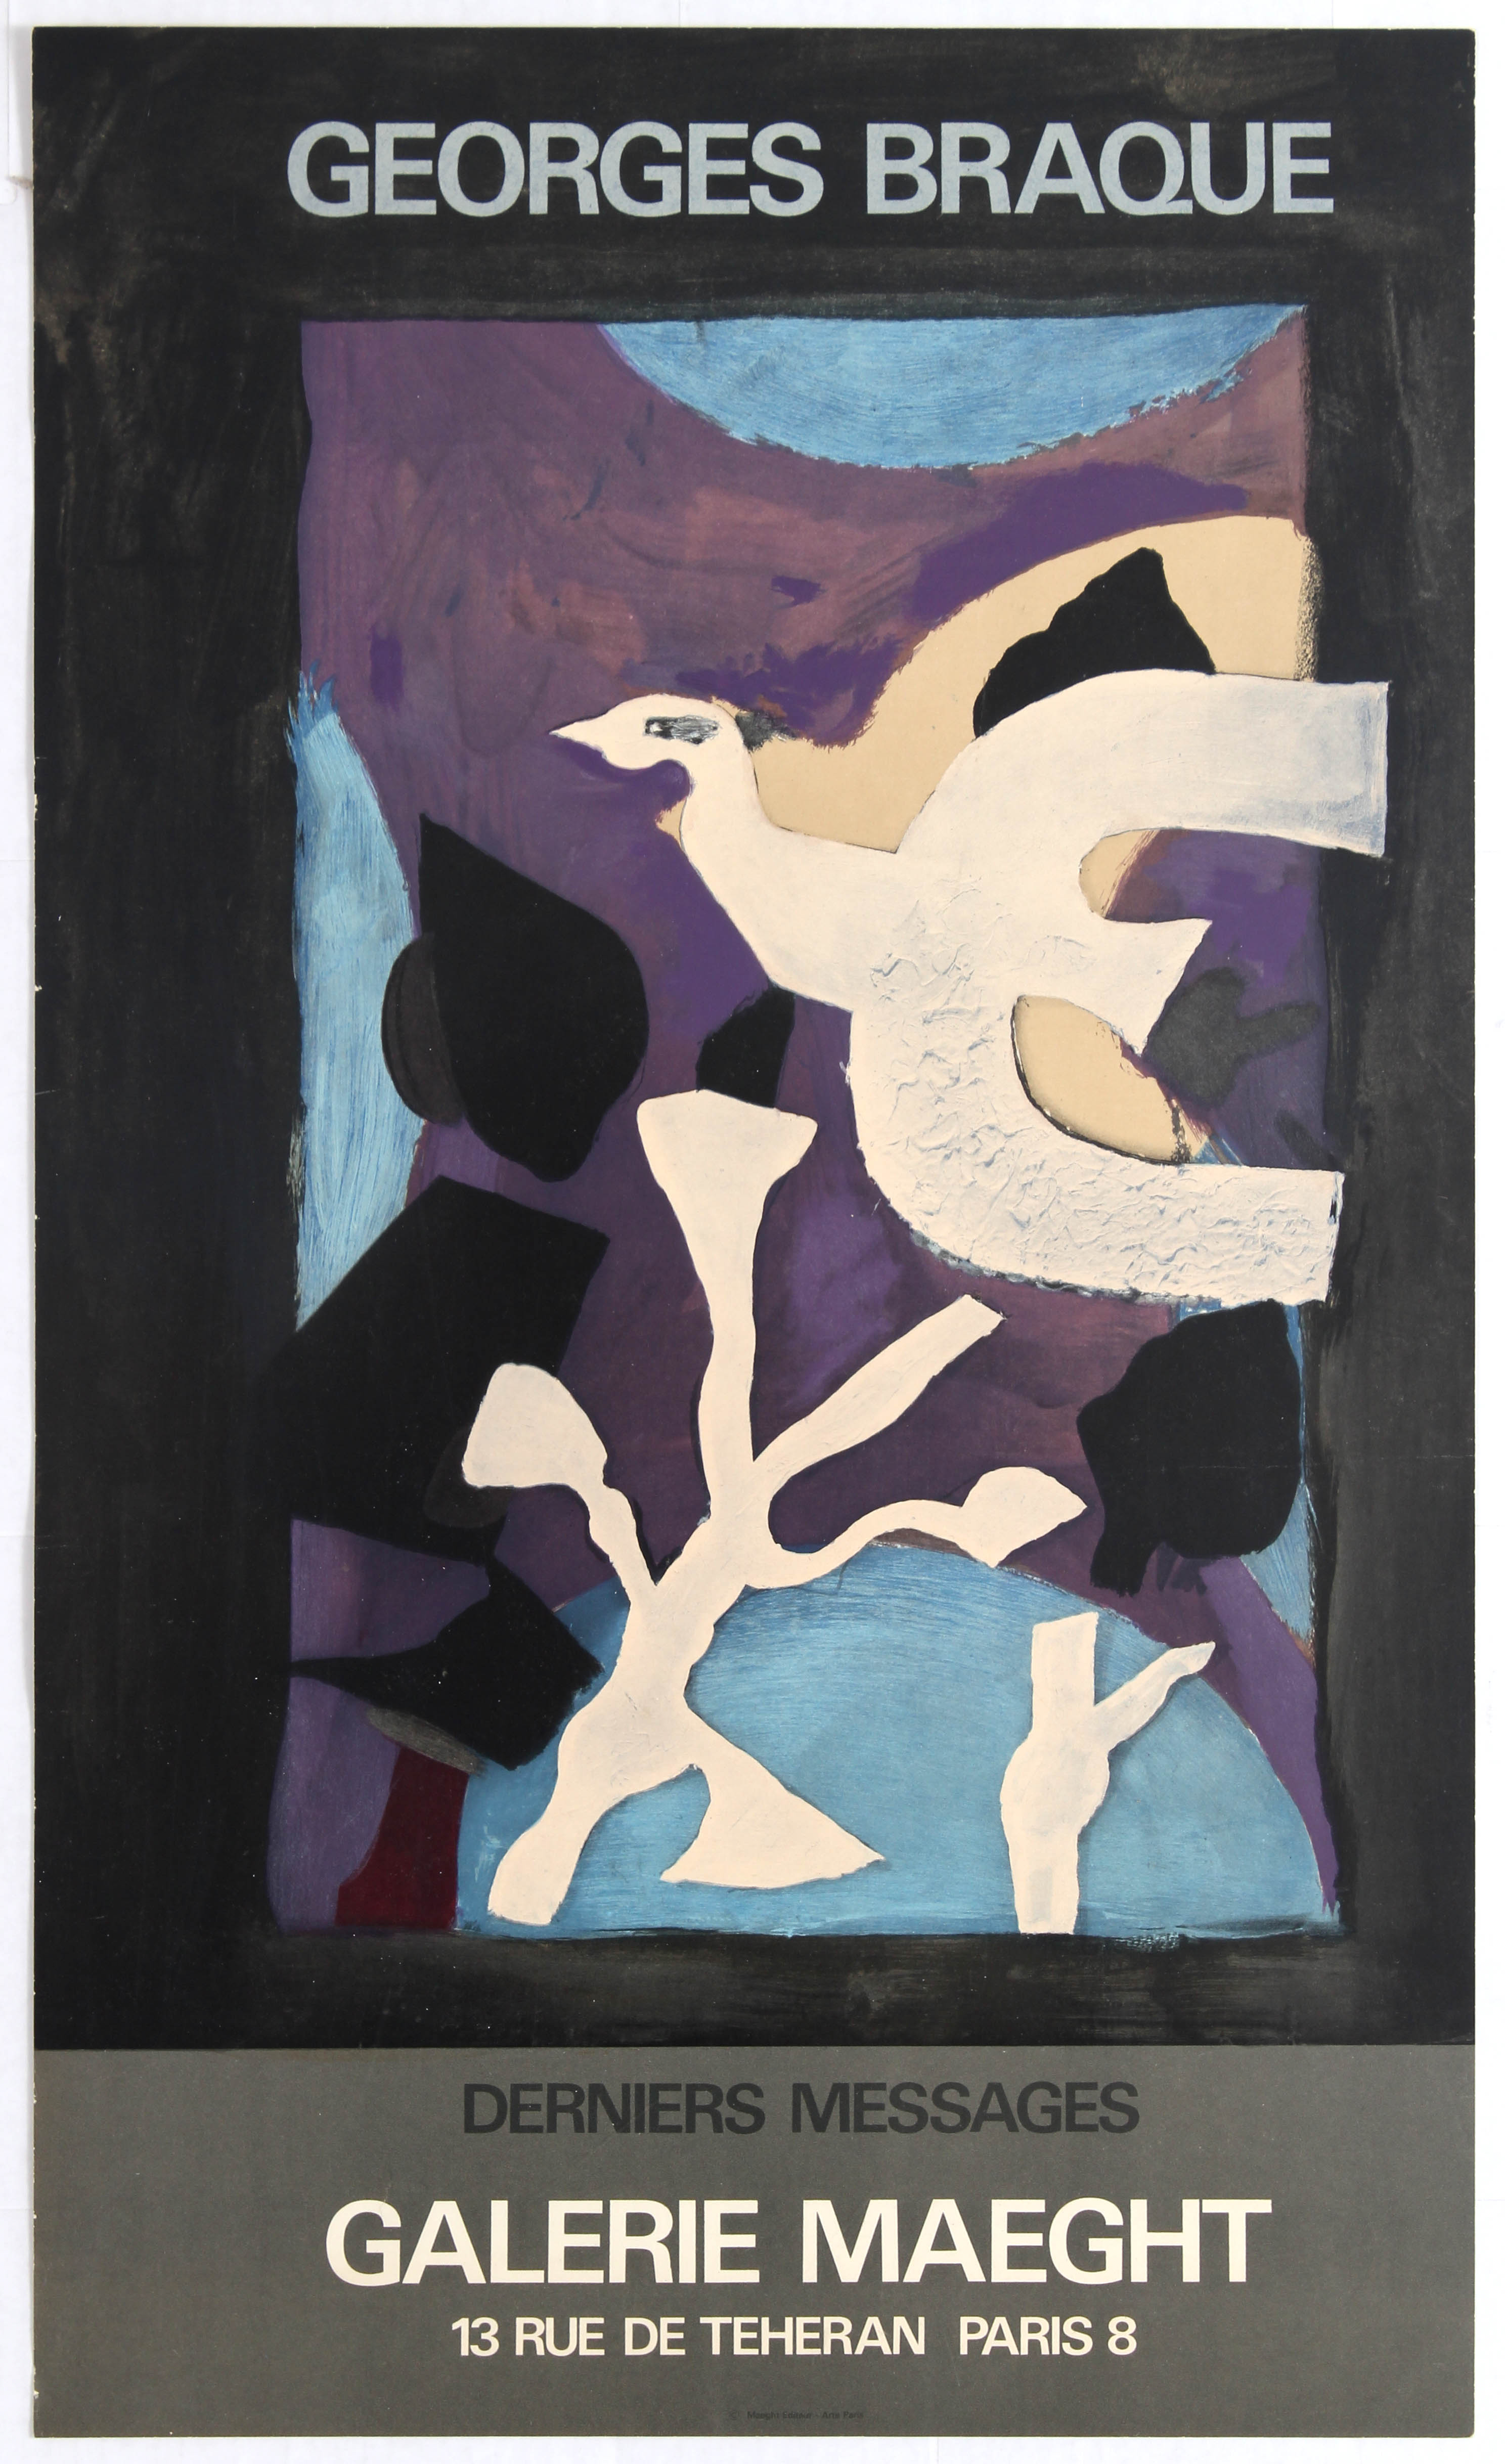 Lot 1600 - Exhibition Advertising Poster George Braque Gallery Maeght